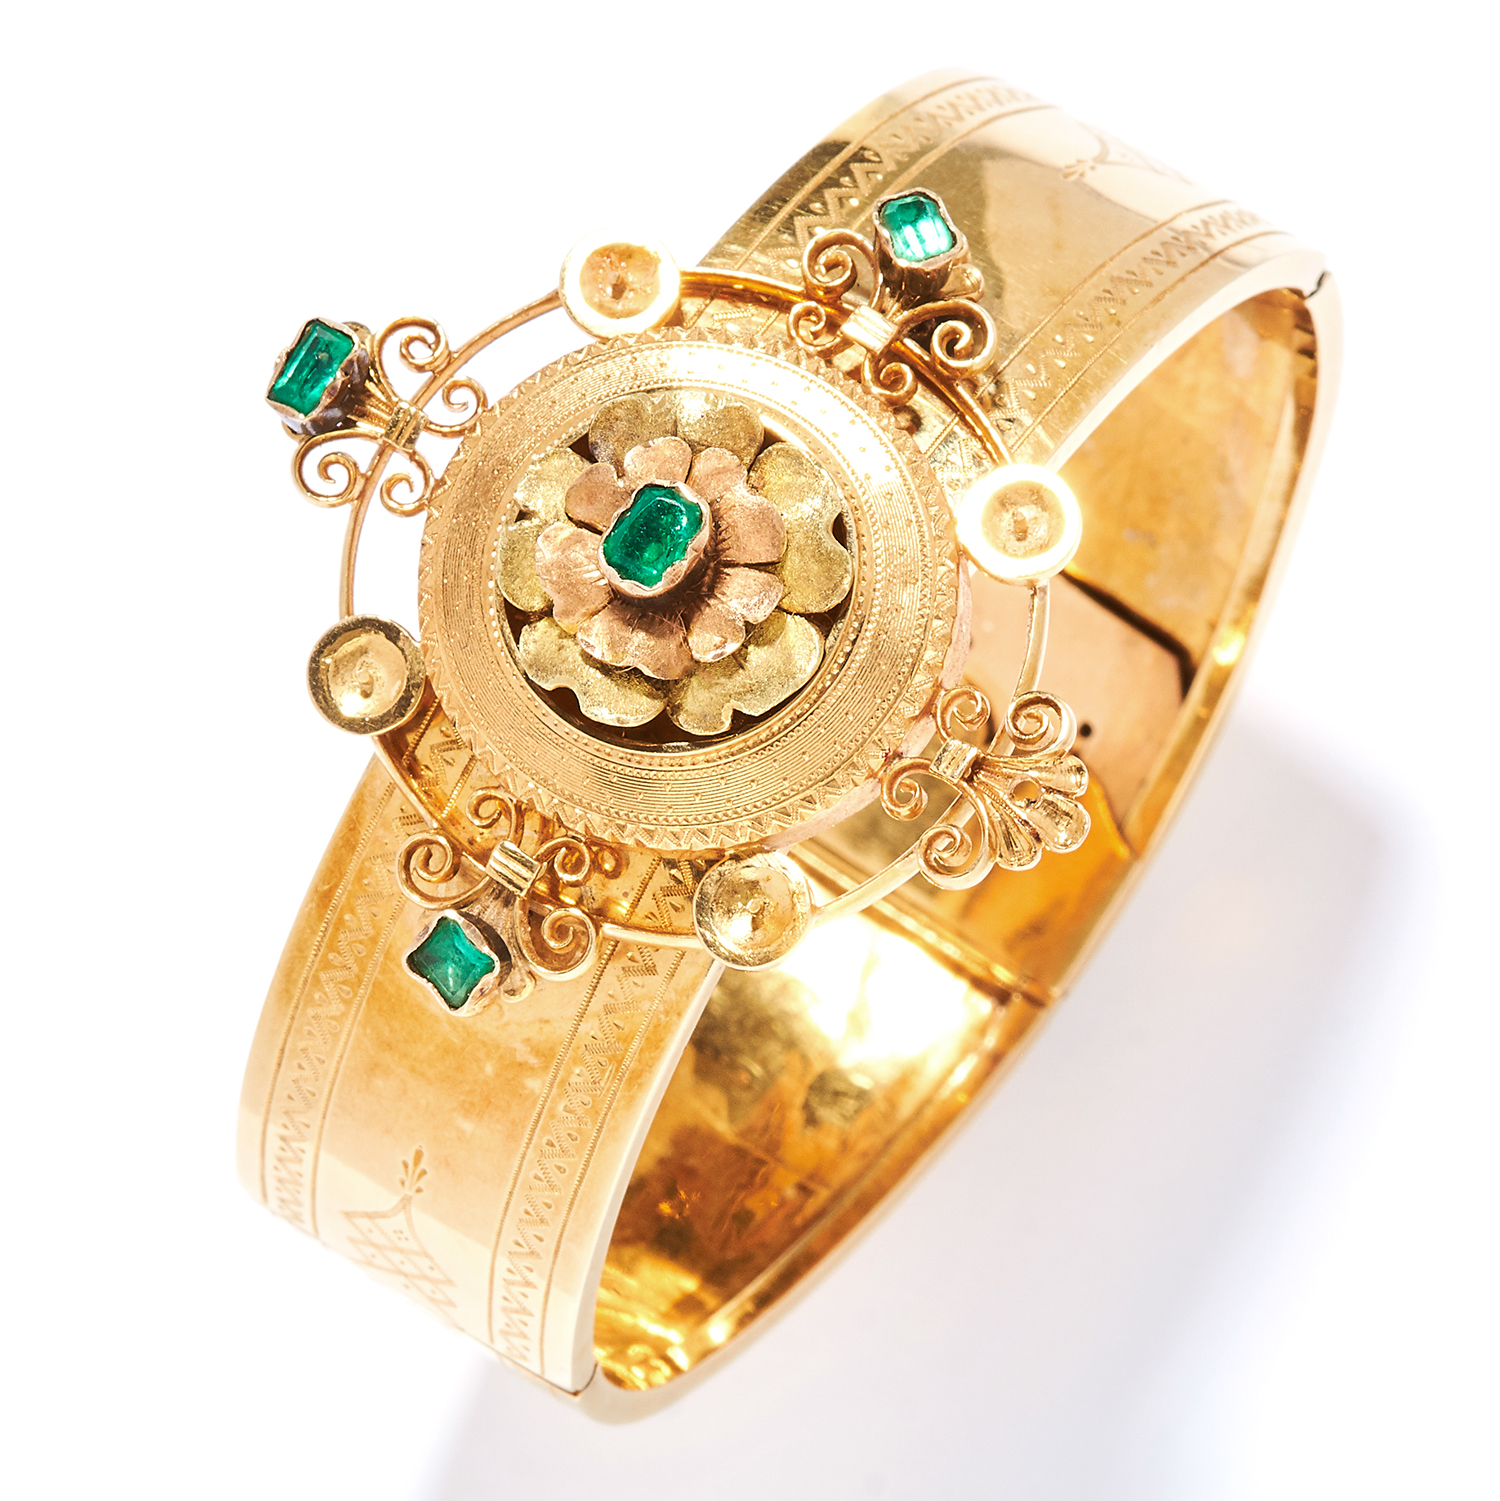 ANTIQUE EMERALD BANGLE, 19TH CENTURY in high carat yellow gold, the band with engraved decoration,